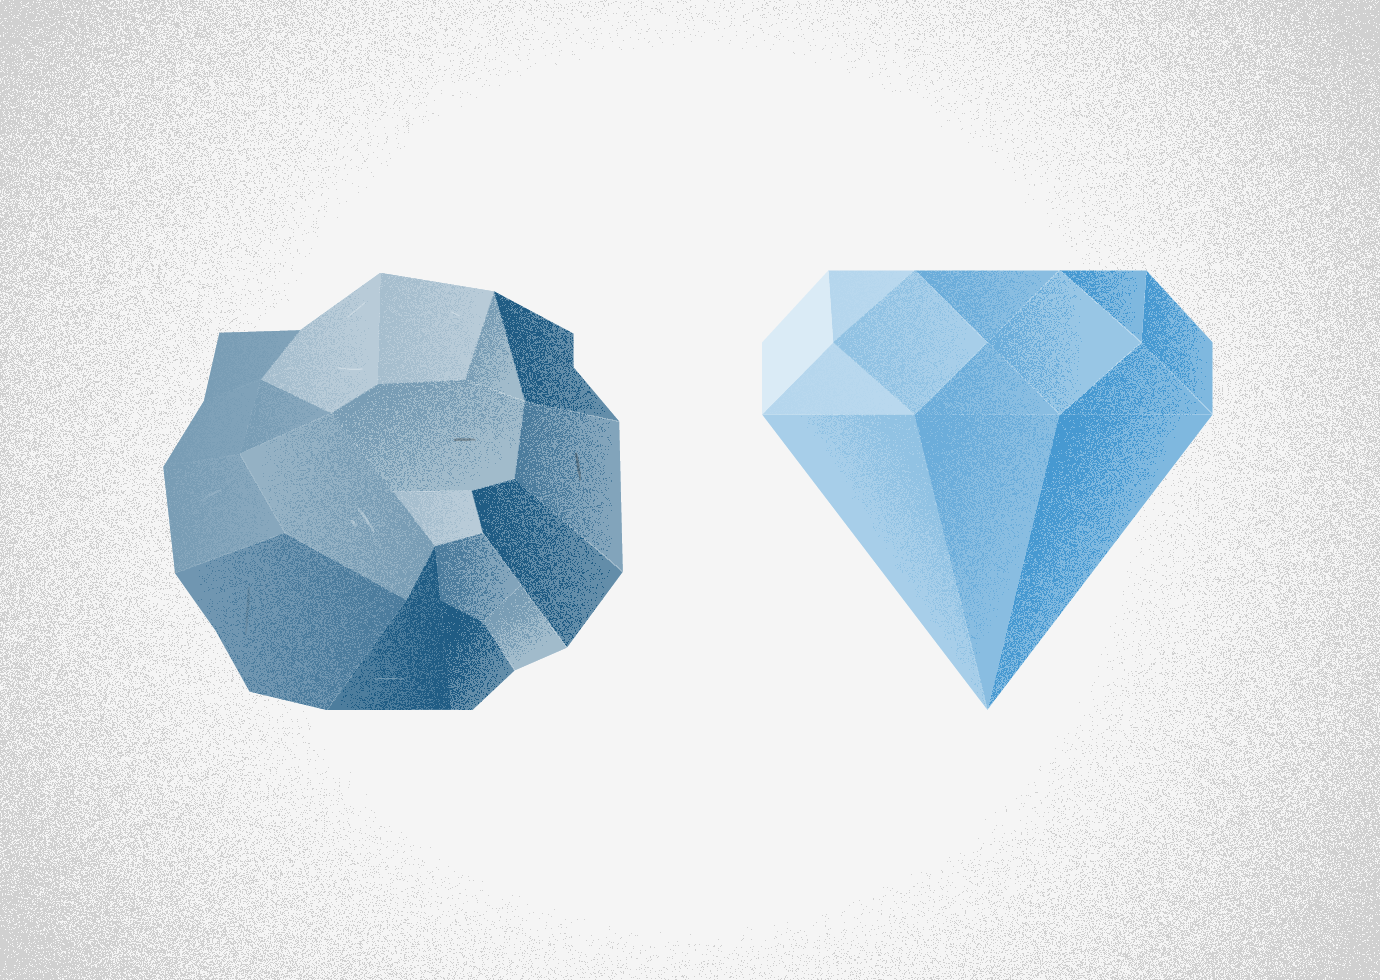 Two diamonds juxtaposed–one uncut and one refined.